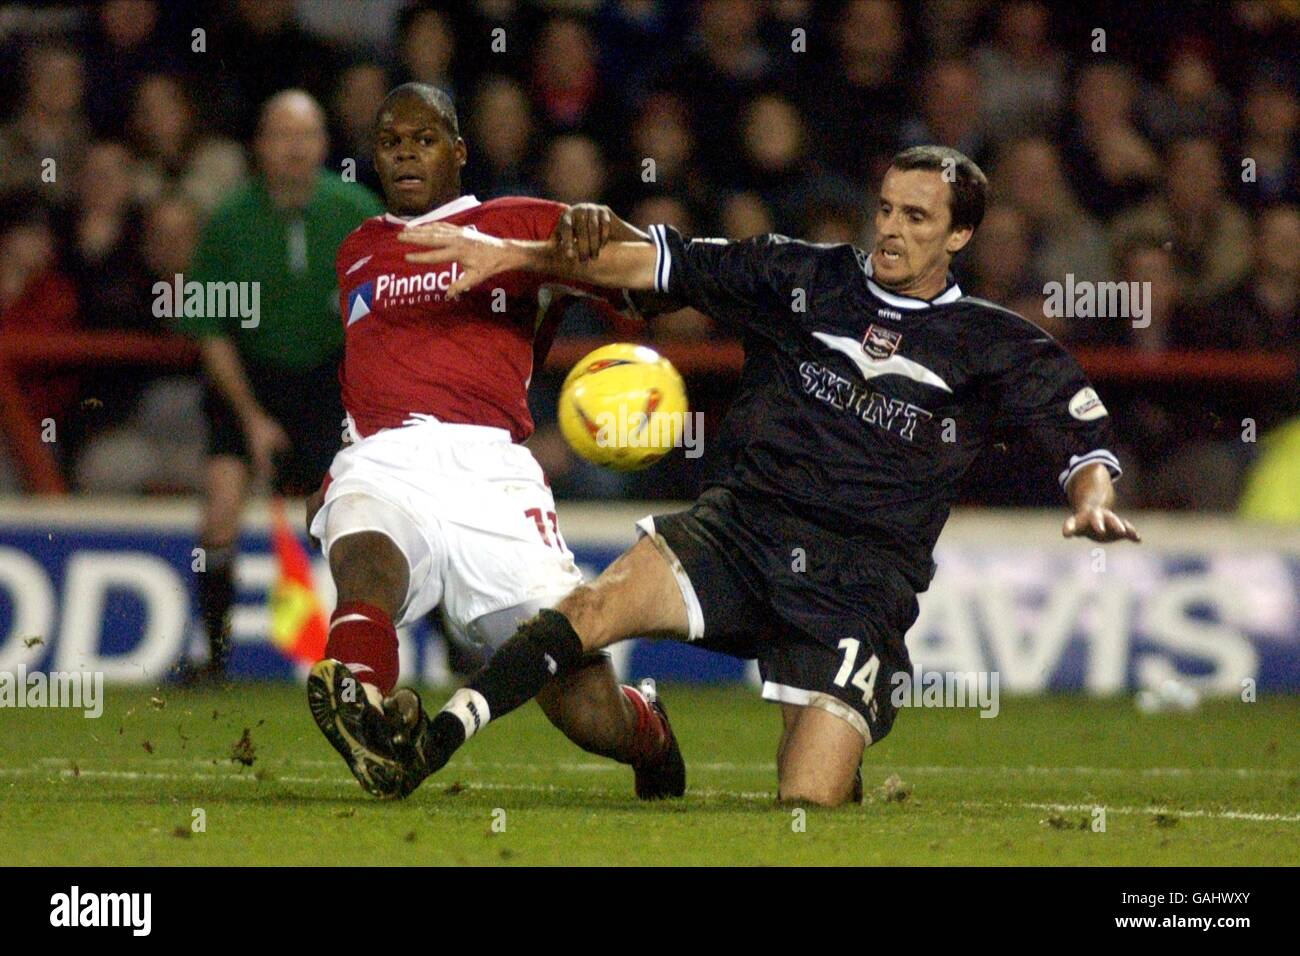 Soccer - Nationwide League Division One - Nottingham Forest v Brighton and Hove Albion Stock Photo